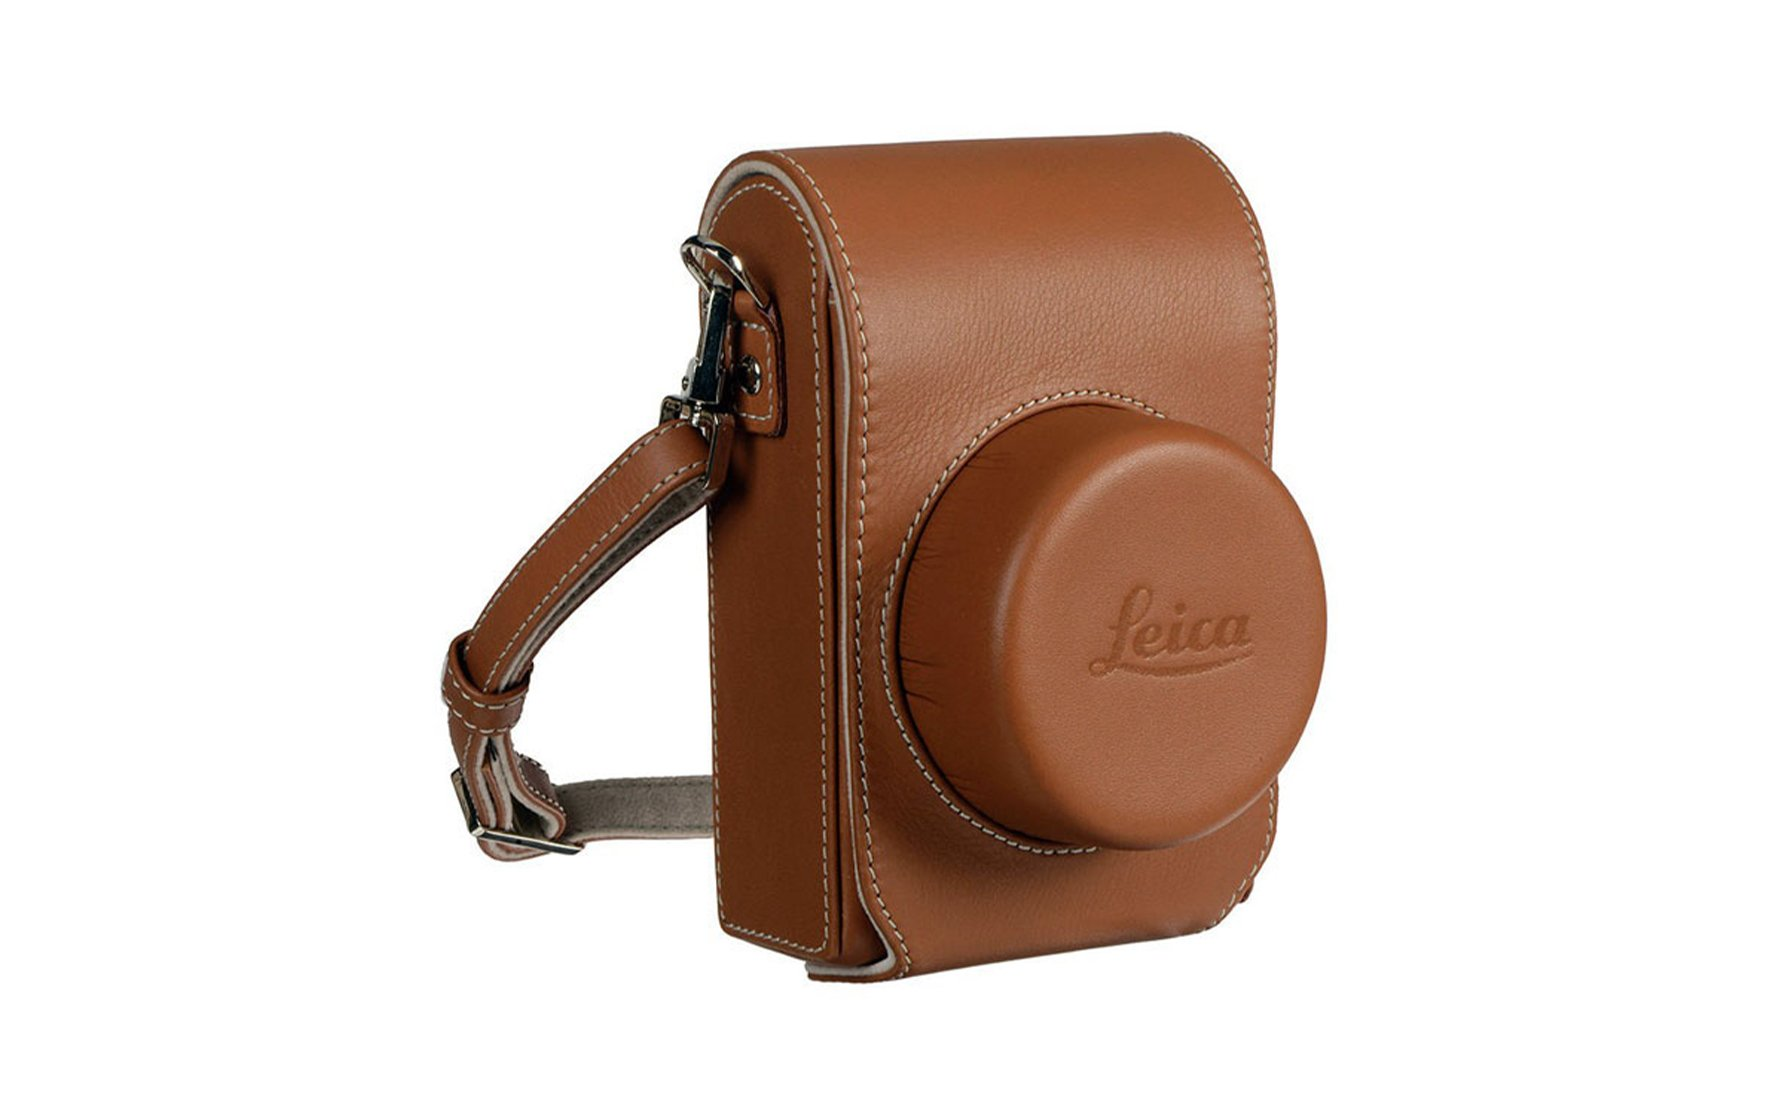 Leica-d-lux-case-in-brown-image-1